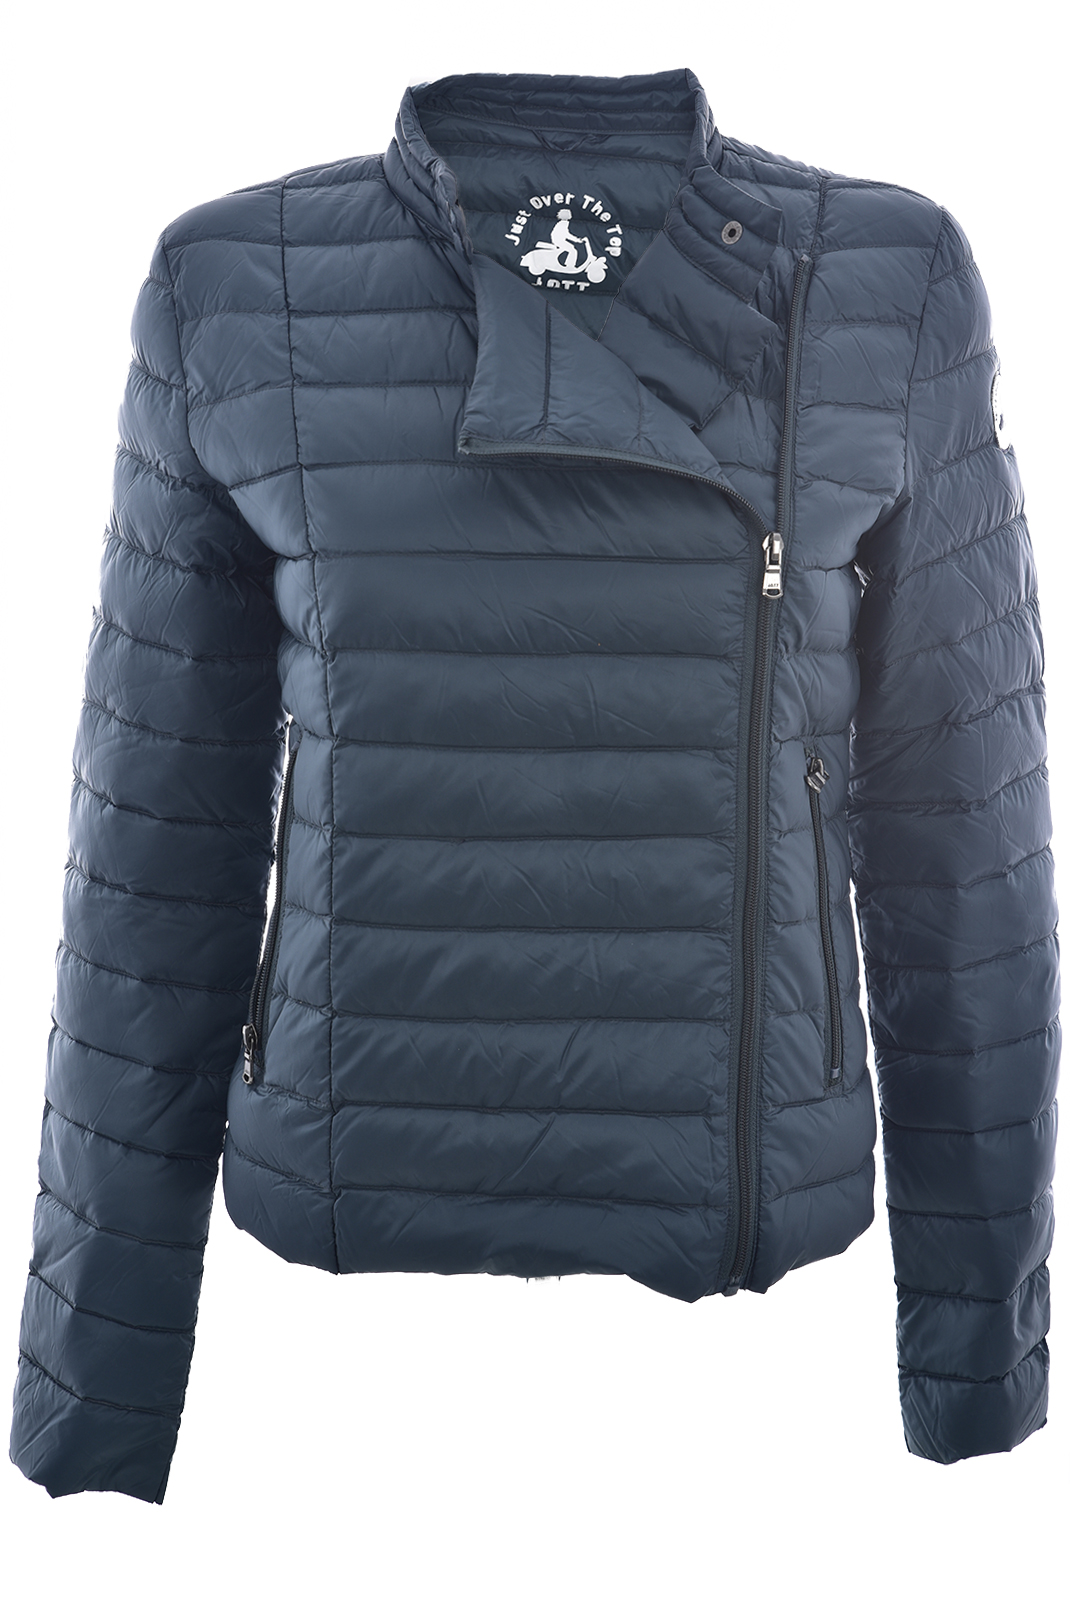 Blouson  Just over the top PLEASURE 127 BLEU PETROLE